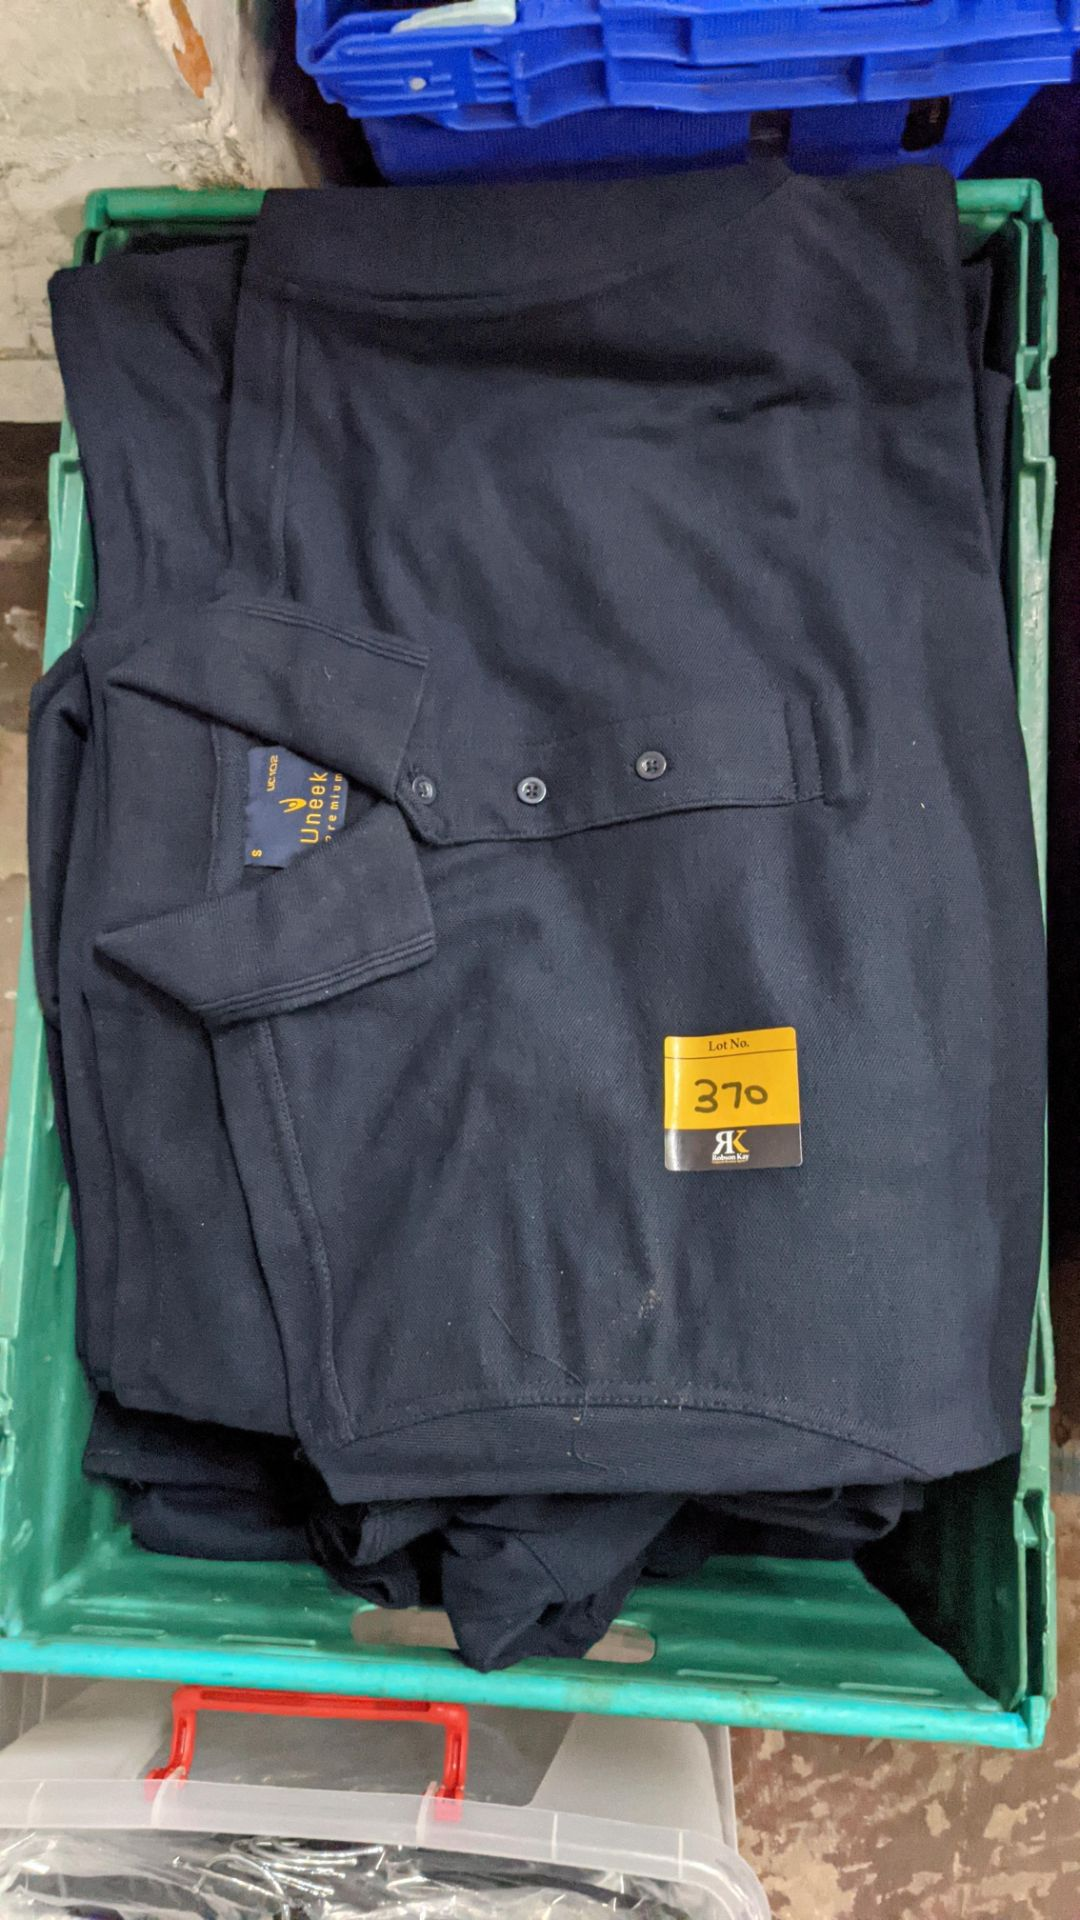 Approx 20 off Uneek navy polo shirts - Image 4 of 4